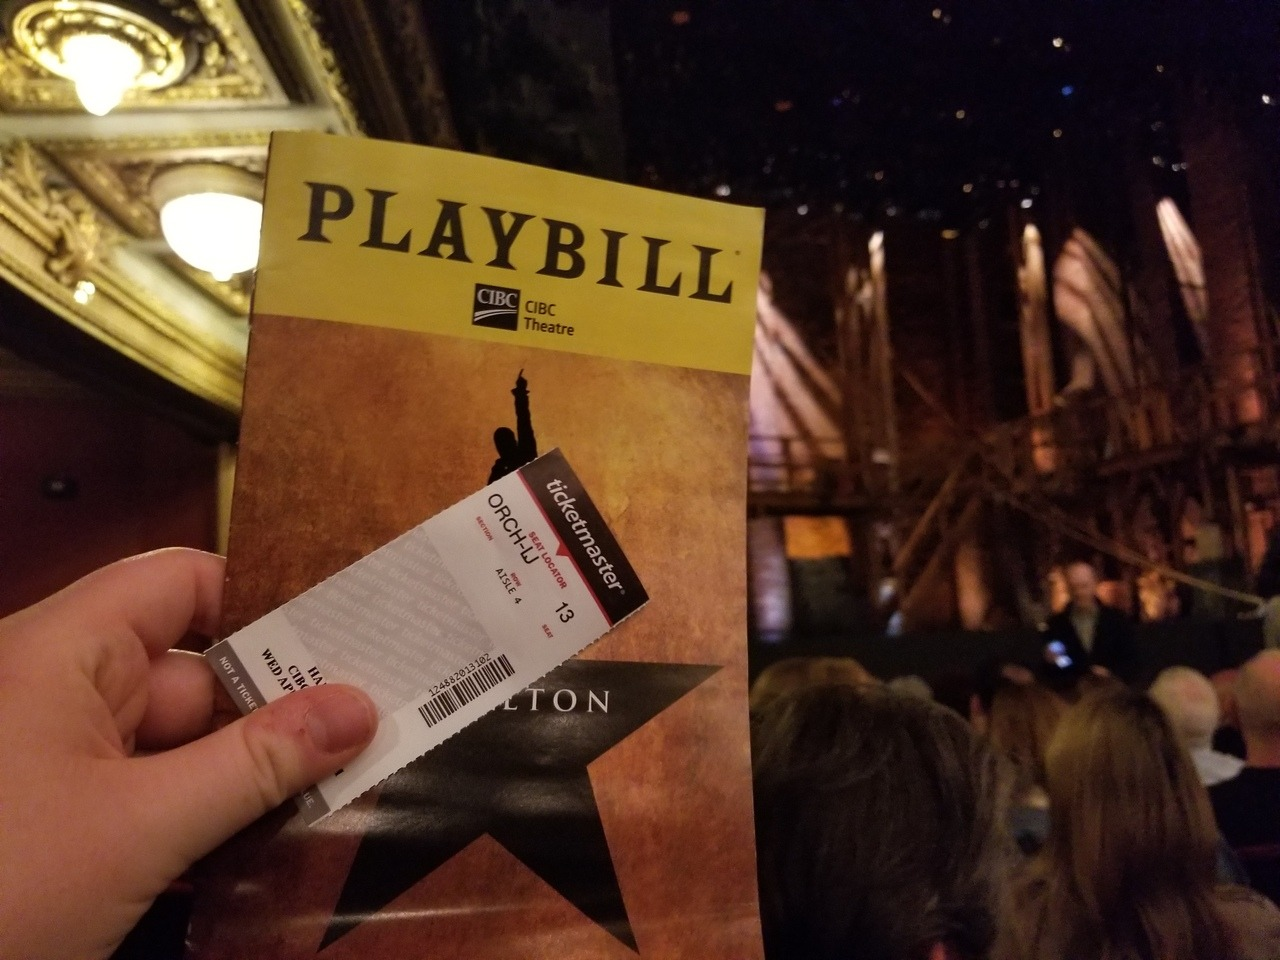 Hamilton orchestra seats in Chicago | Photo courtesy of theatrenibbles.com